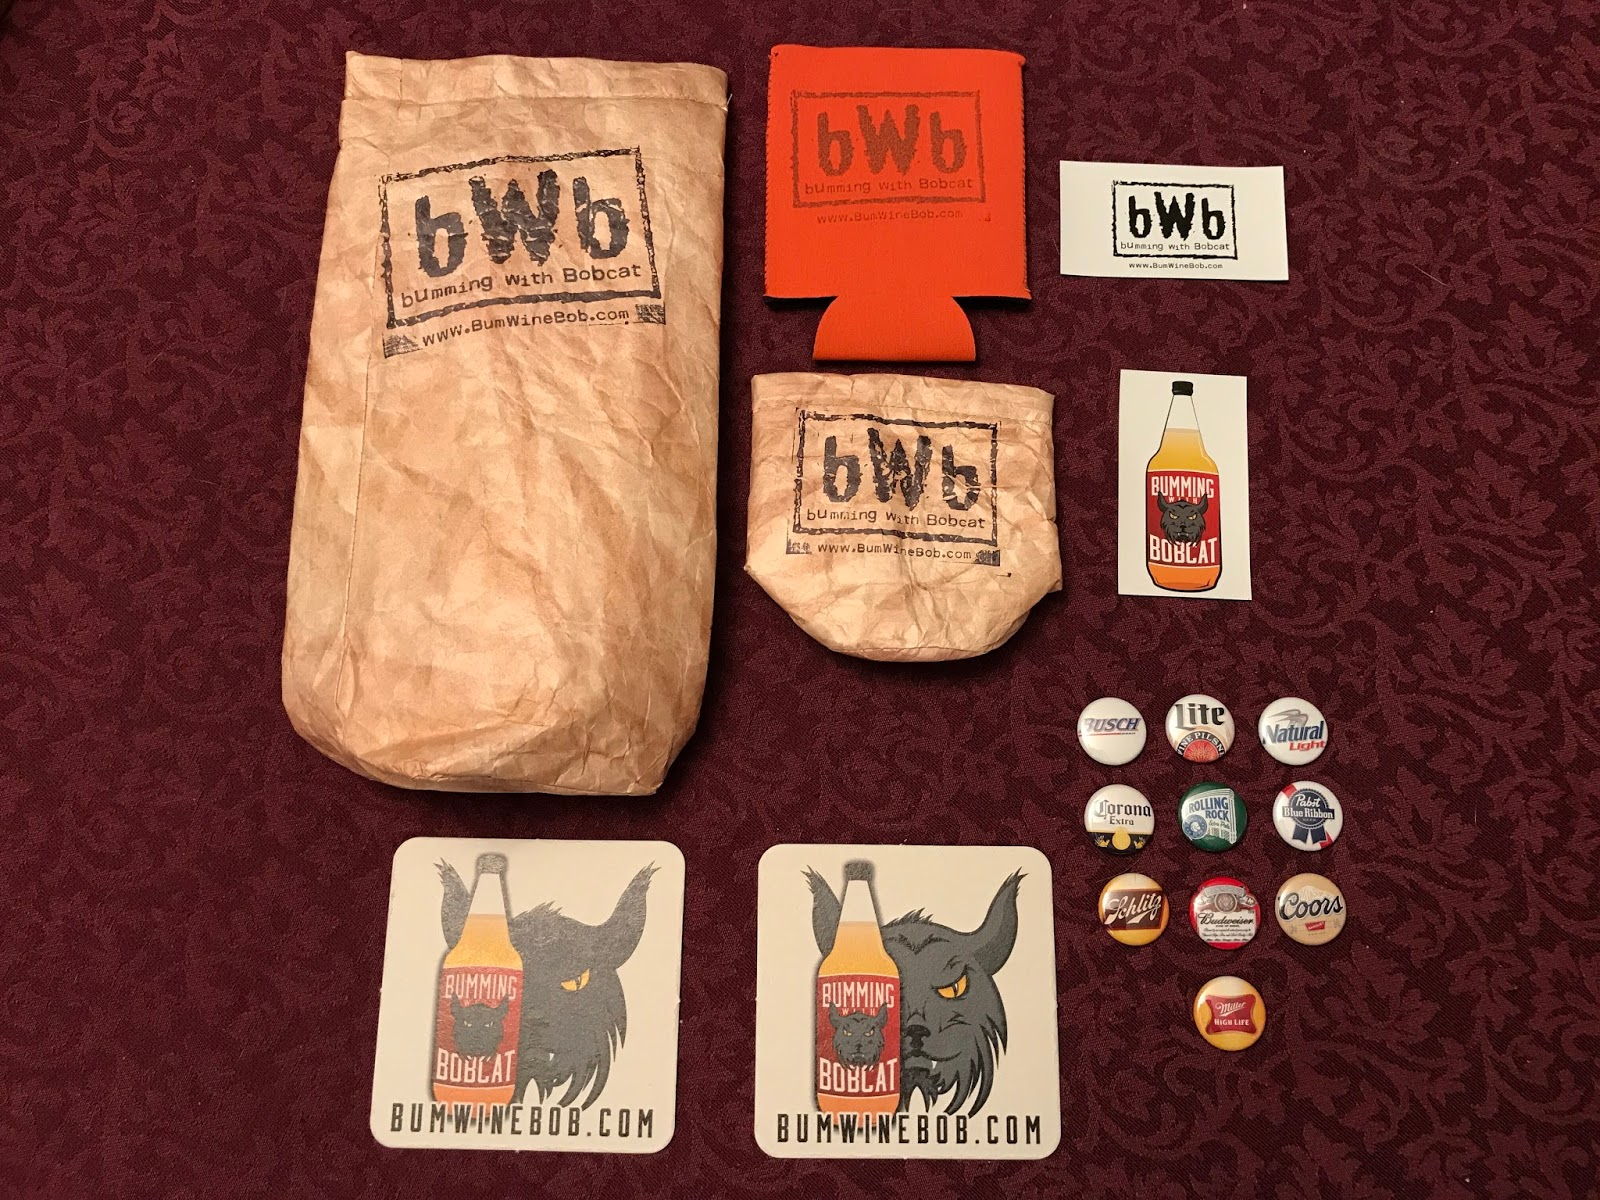 What S Included In The Bwb Brown Bag Special